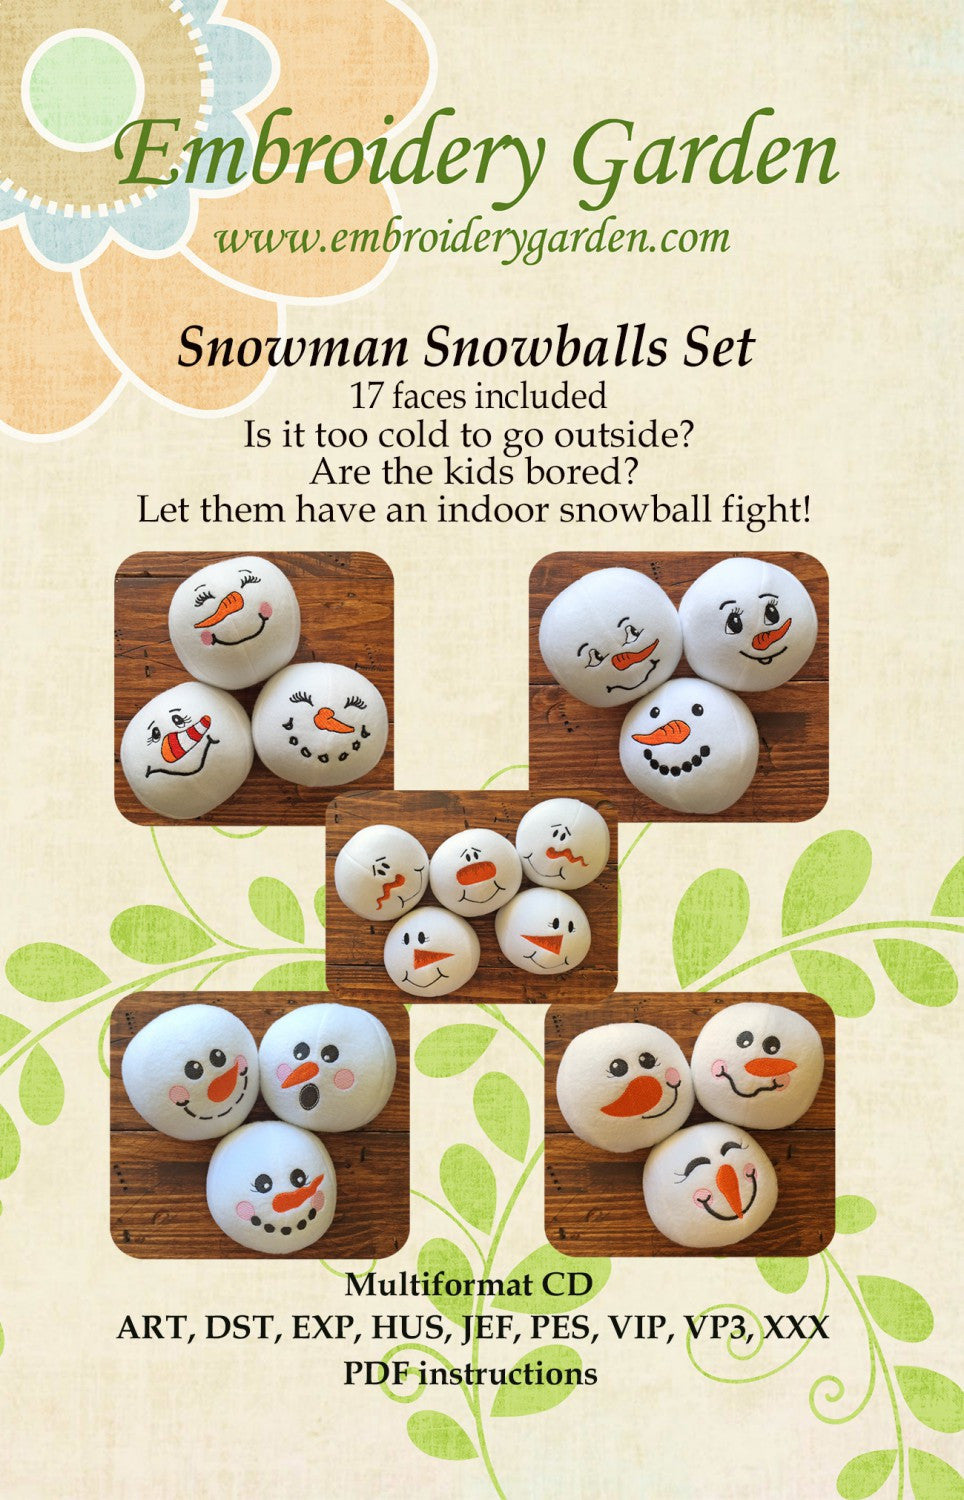 embroidery garden snowman snowballs set - Embroidery Garden